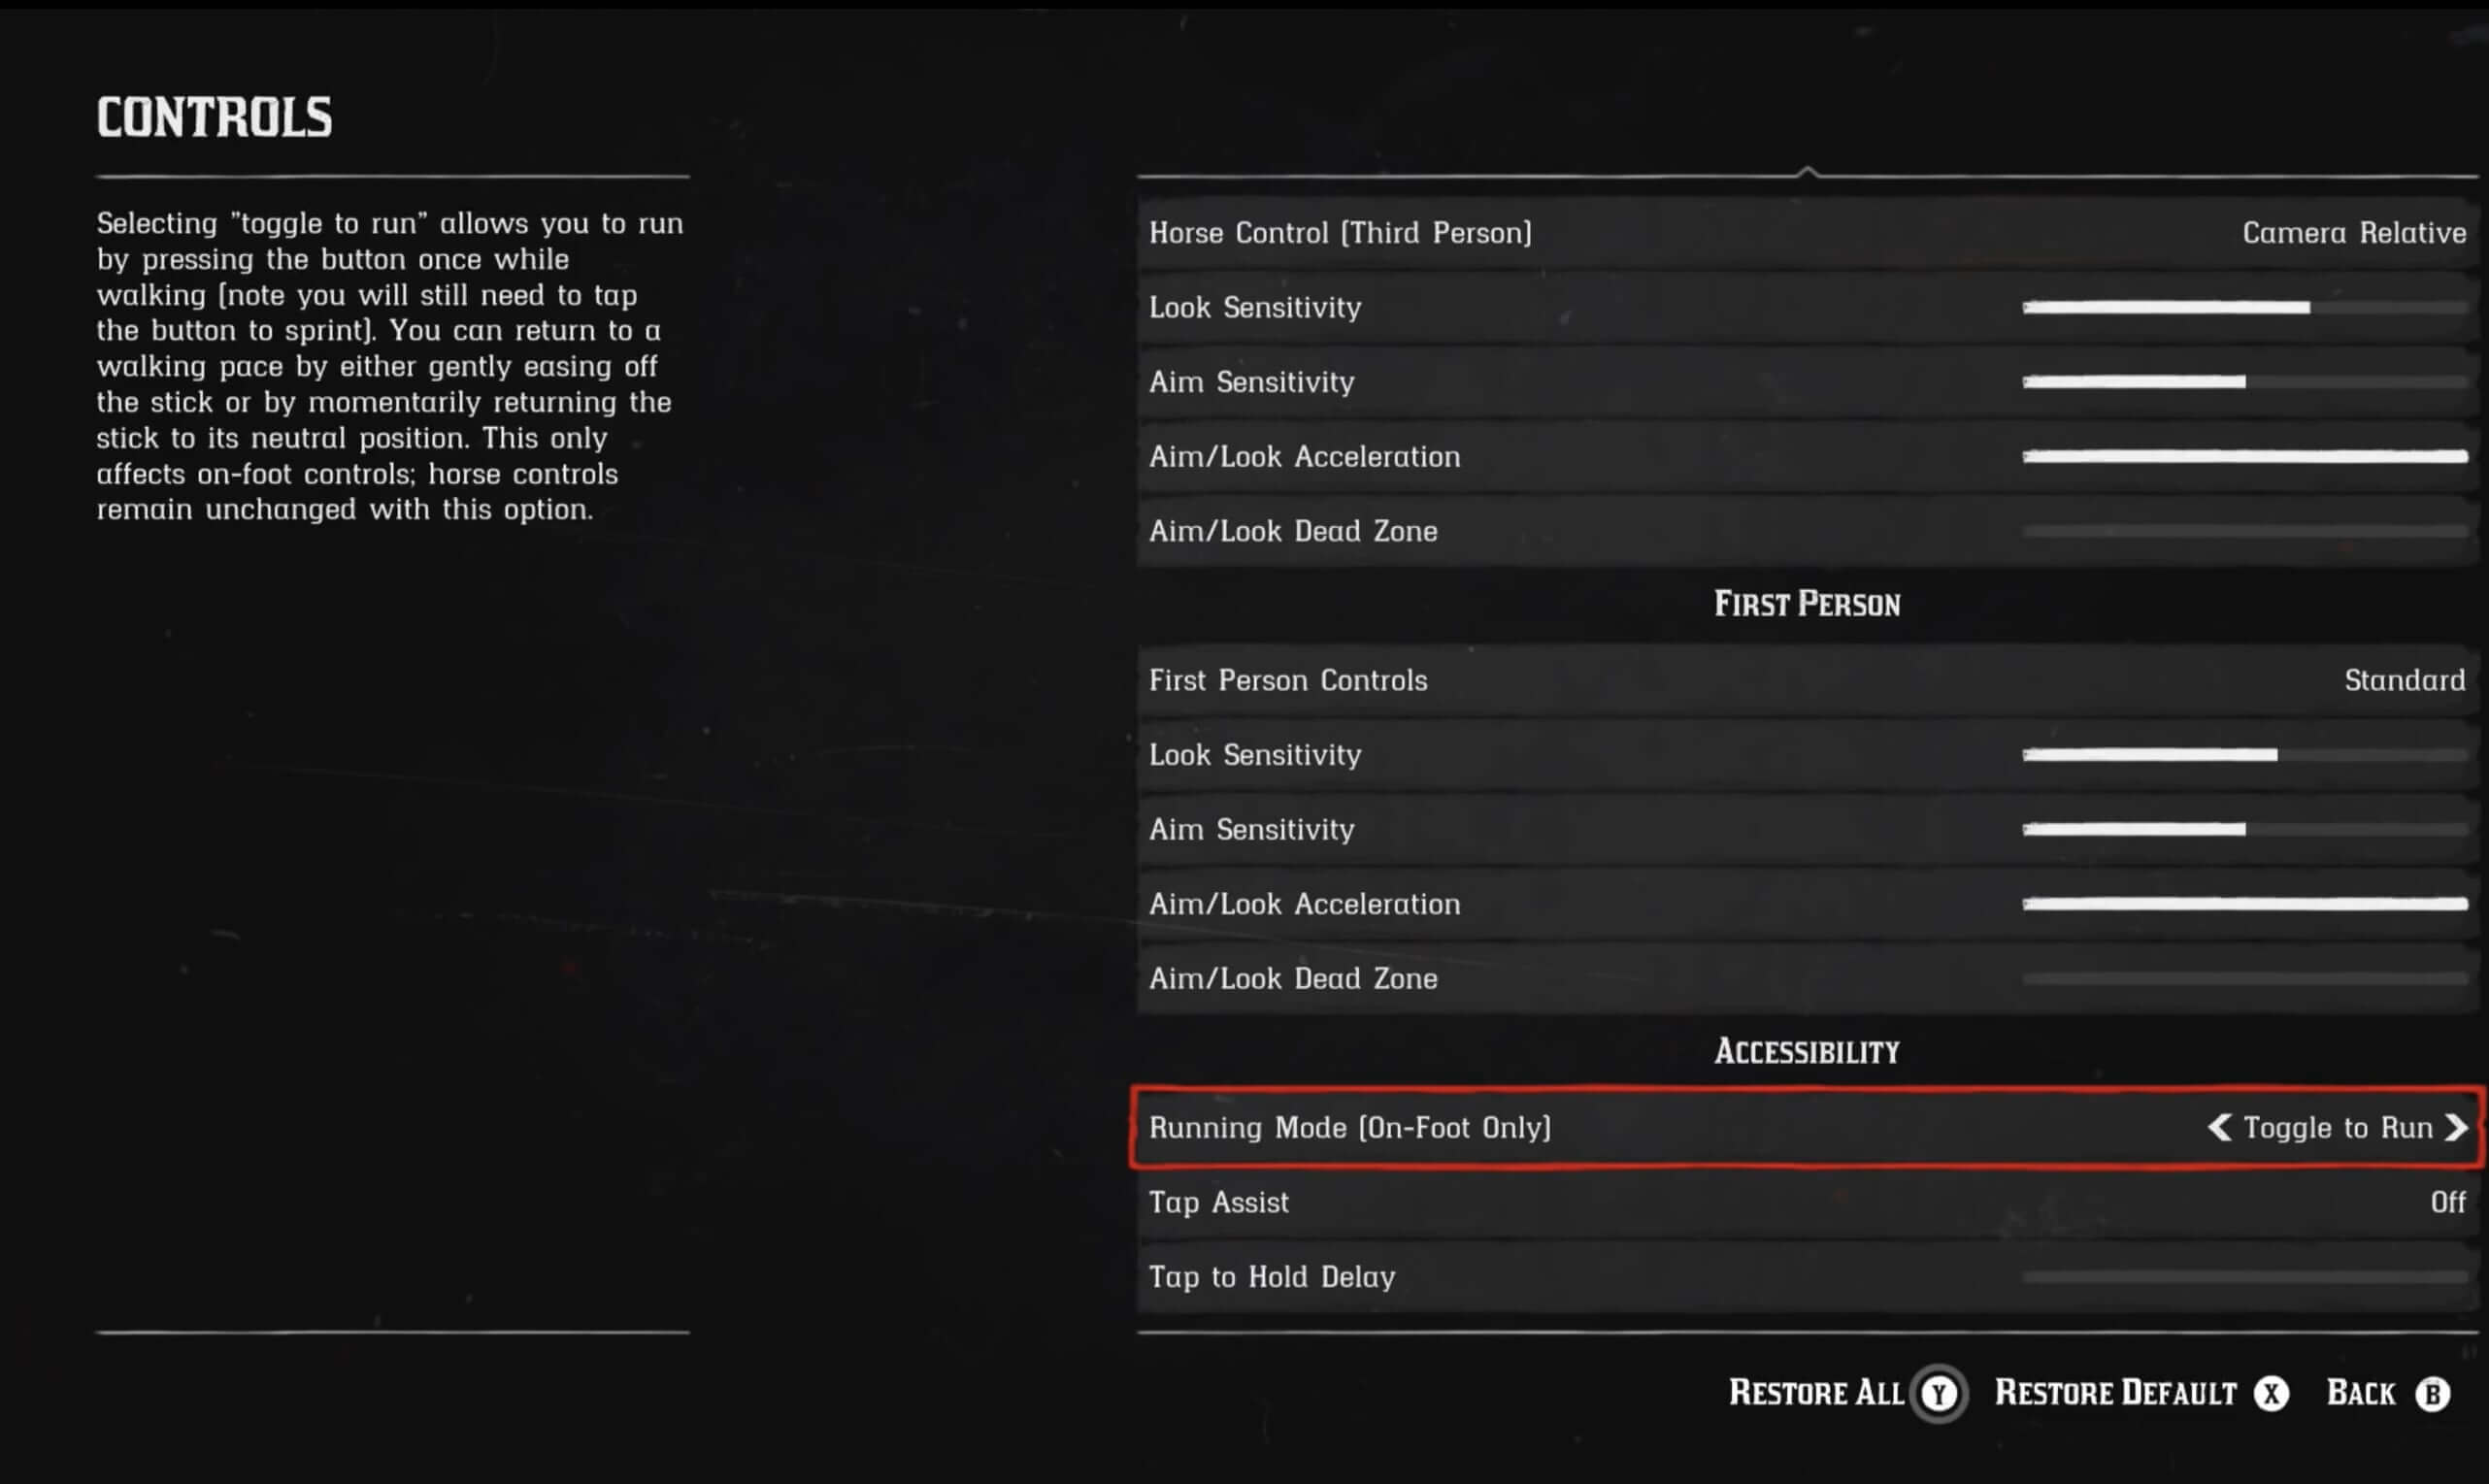 Red Dead Redemption 2 tips - Controls